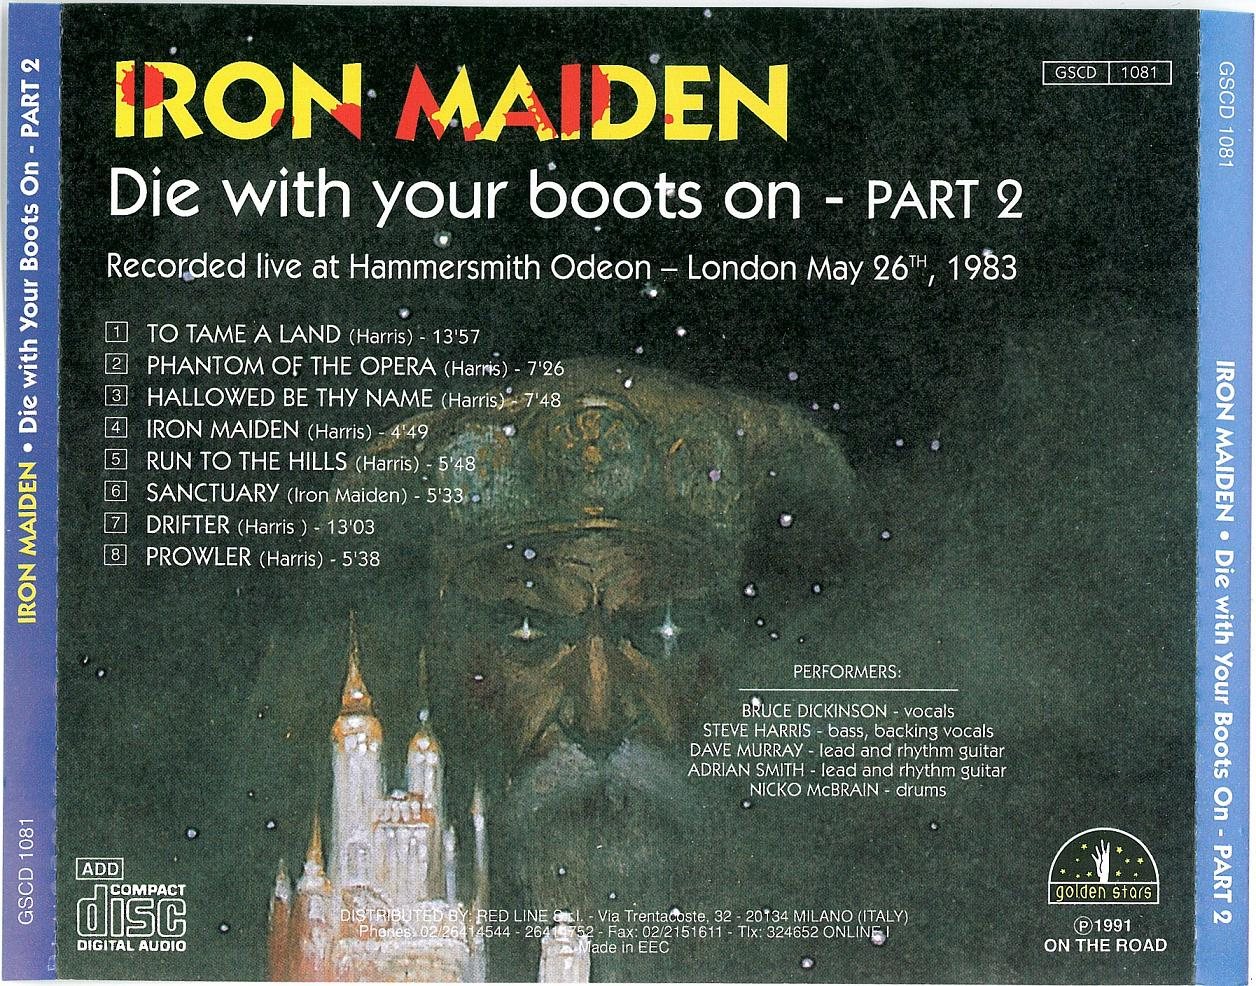 1983-05-26-DIE_WITH_YOUR_BOOTS_ON-cd2-back